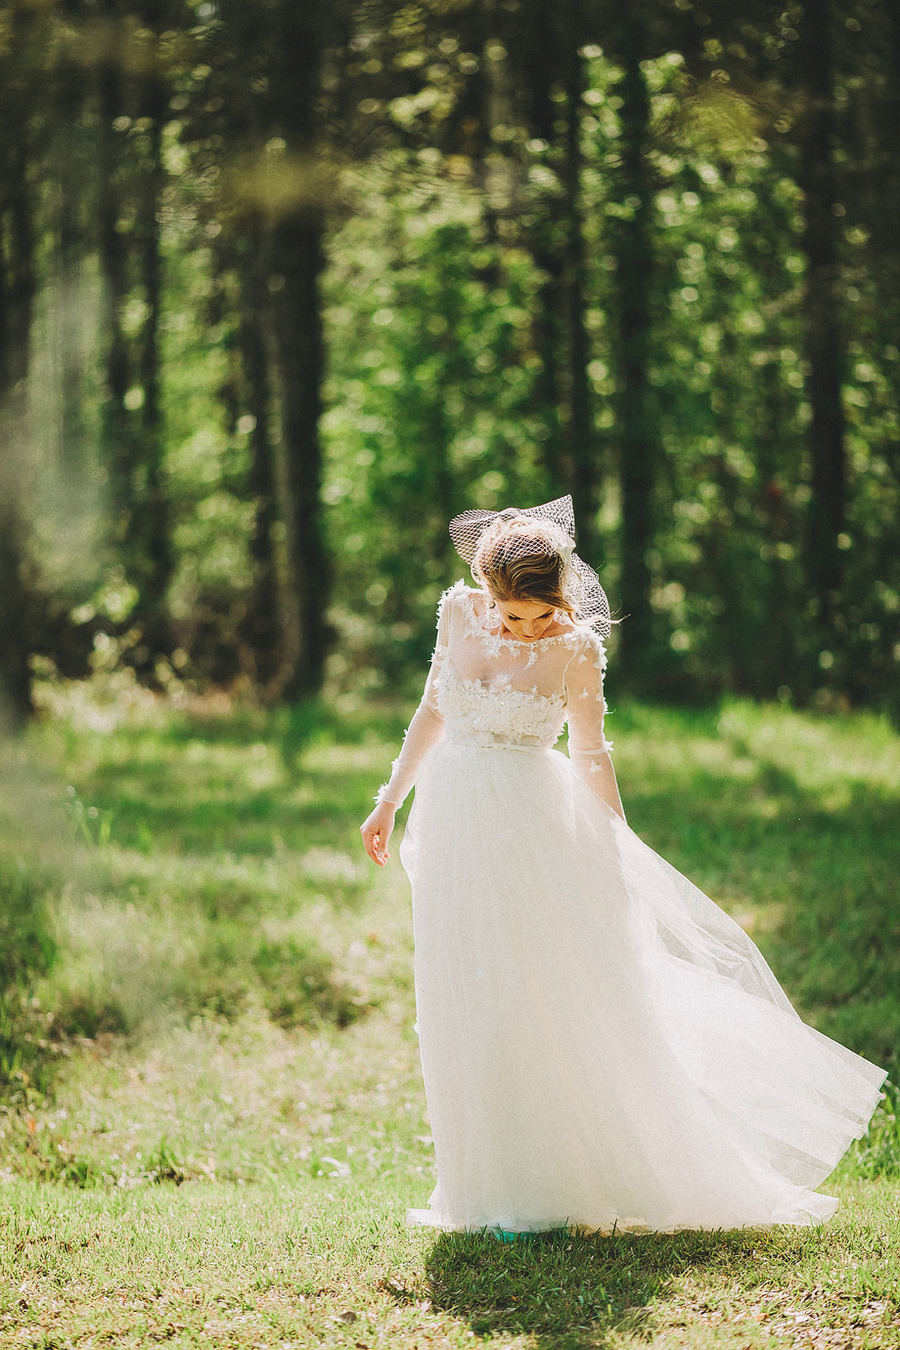 louisiana-wedding-28-11232014-ky